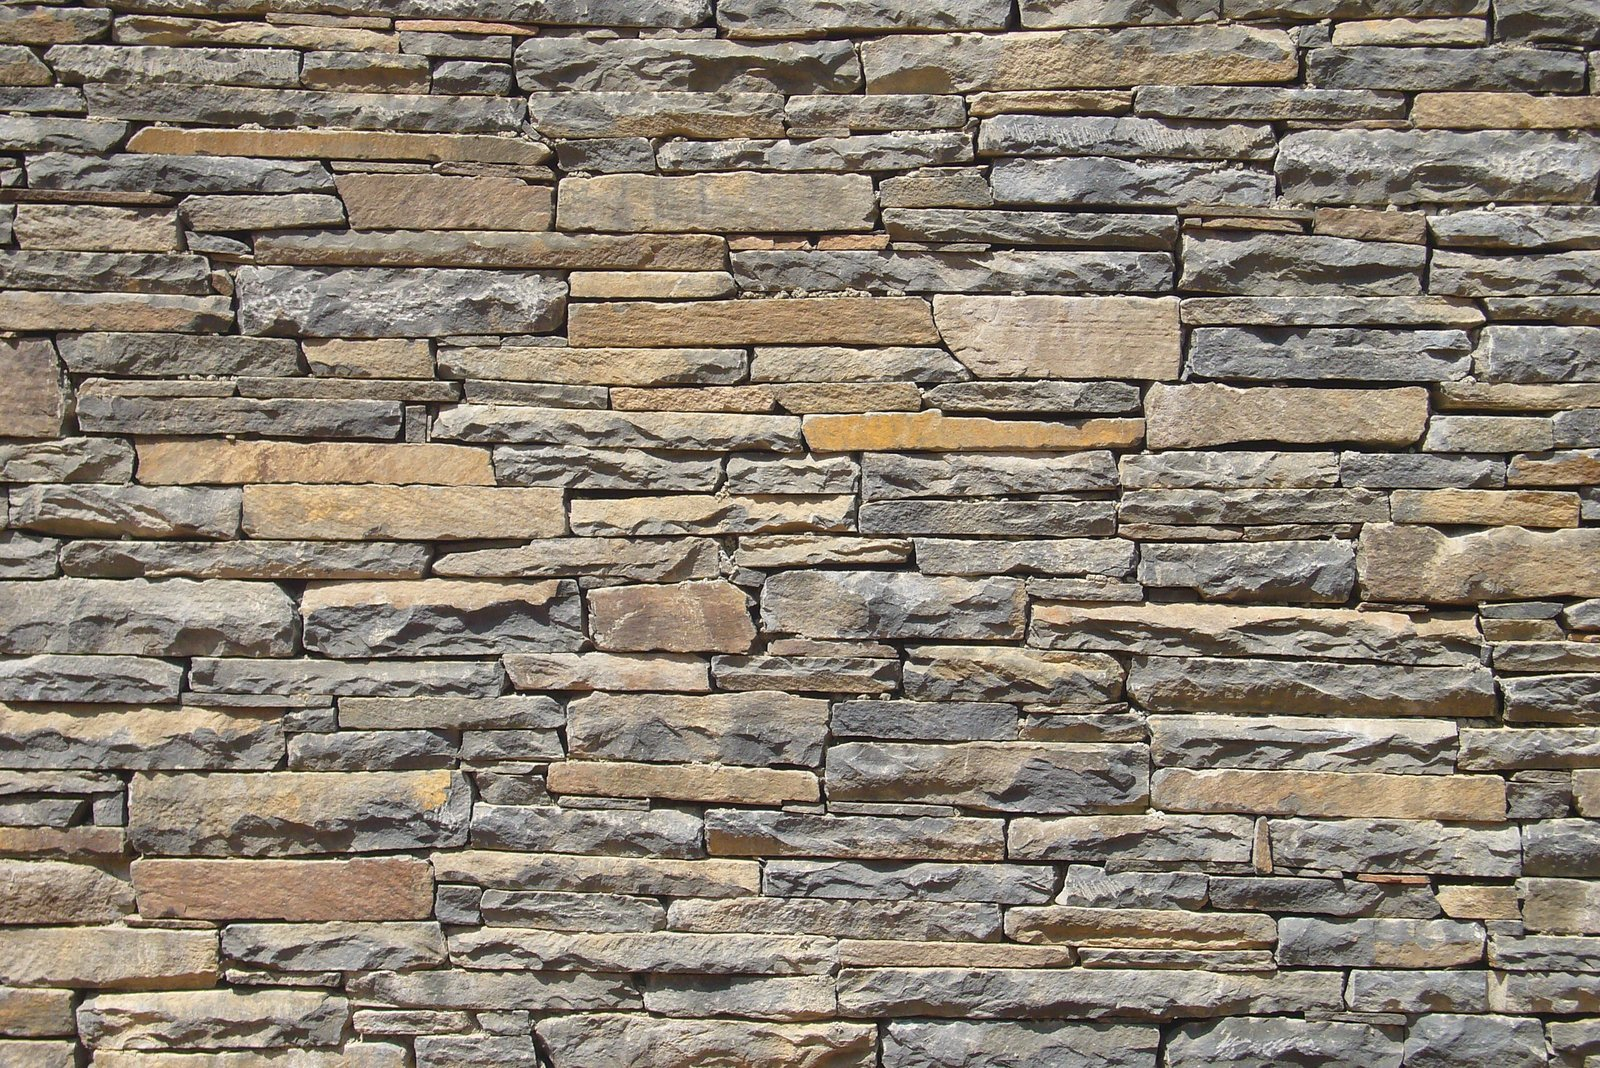 Locally quarried hand-stacked Ledgestone wall built by local artisan masons  Catskills Suburban by Resolution: 4 Architecture